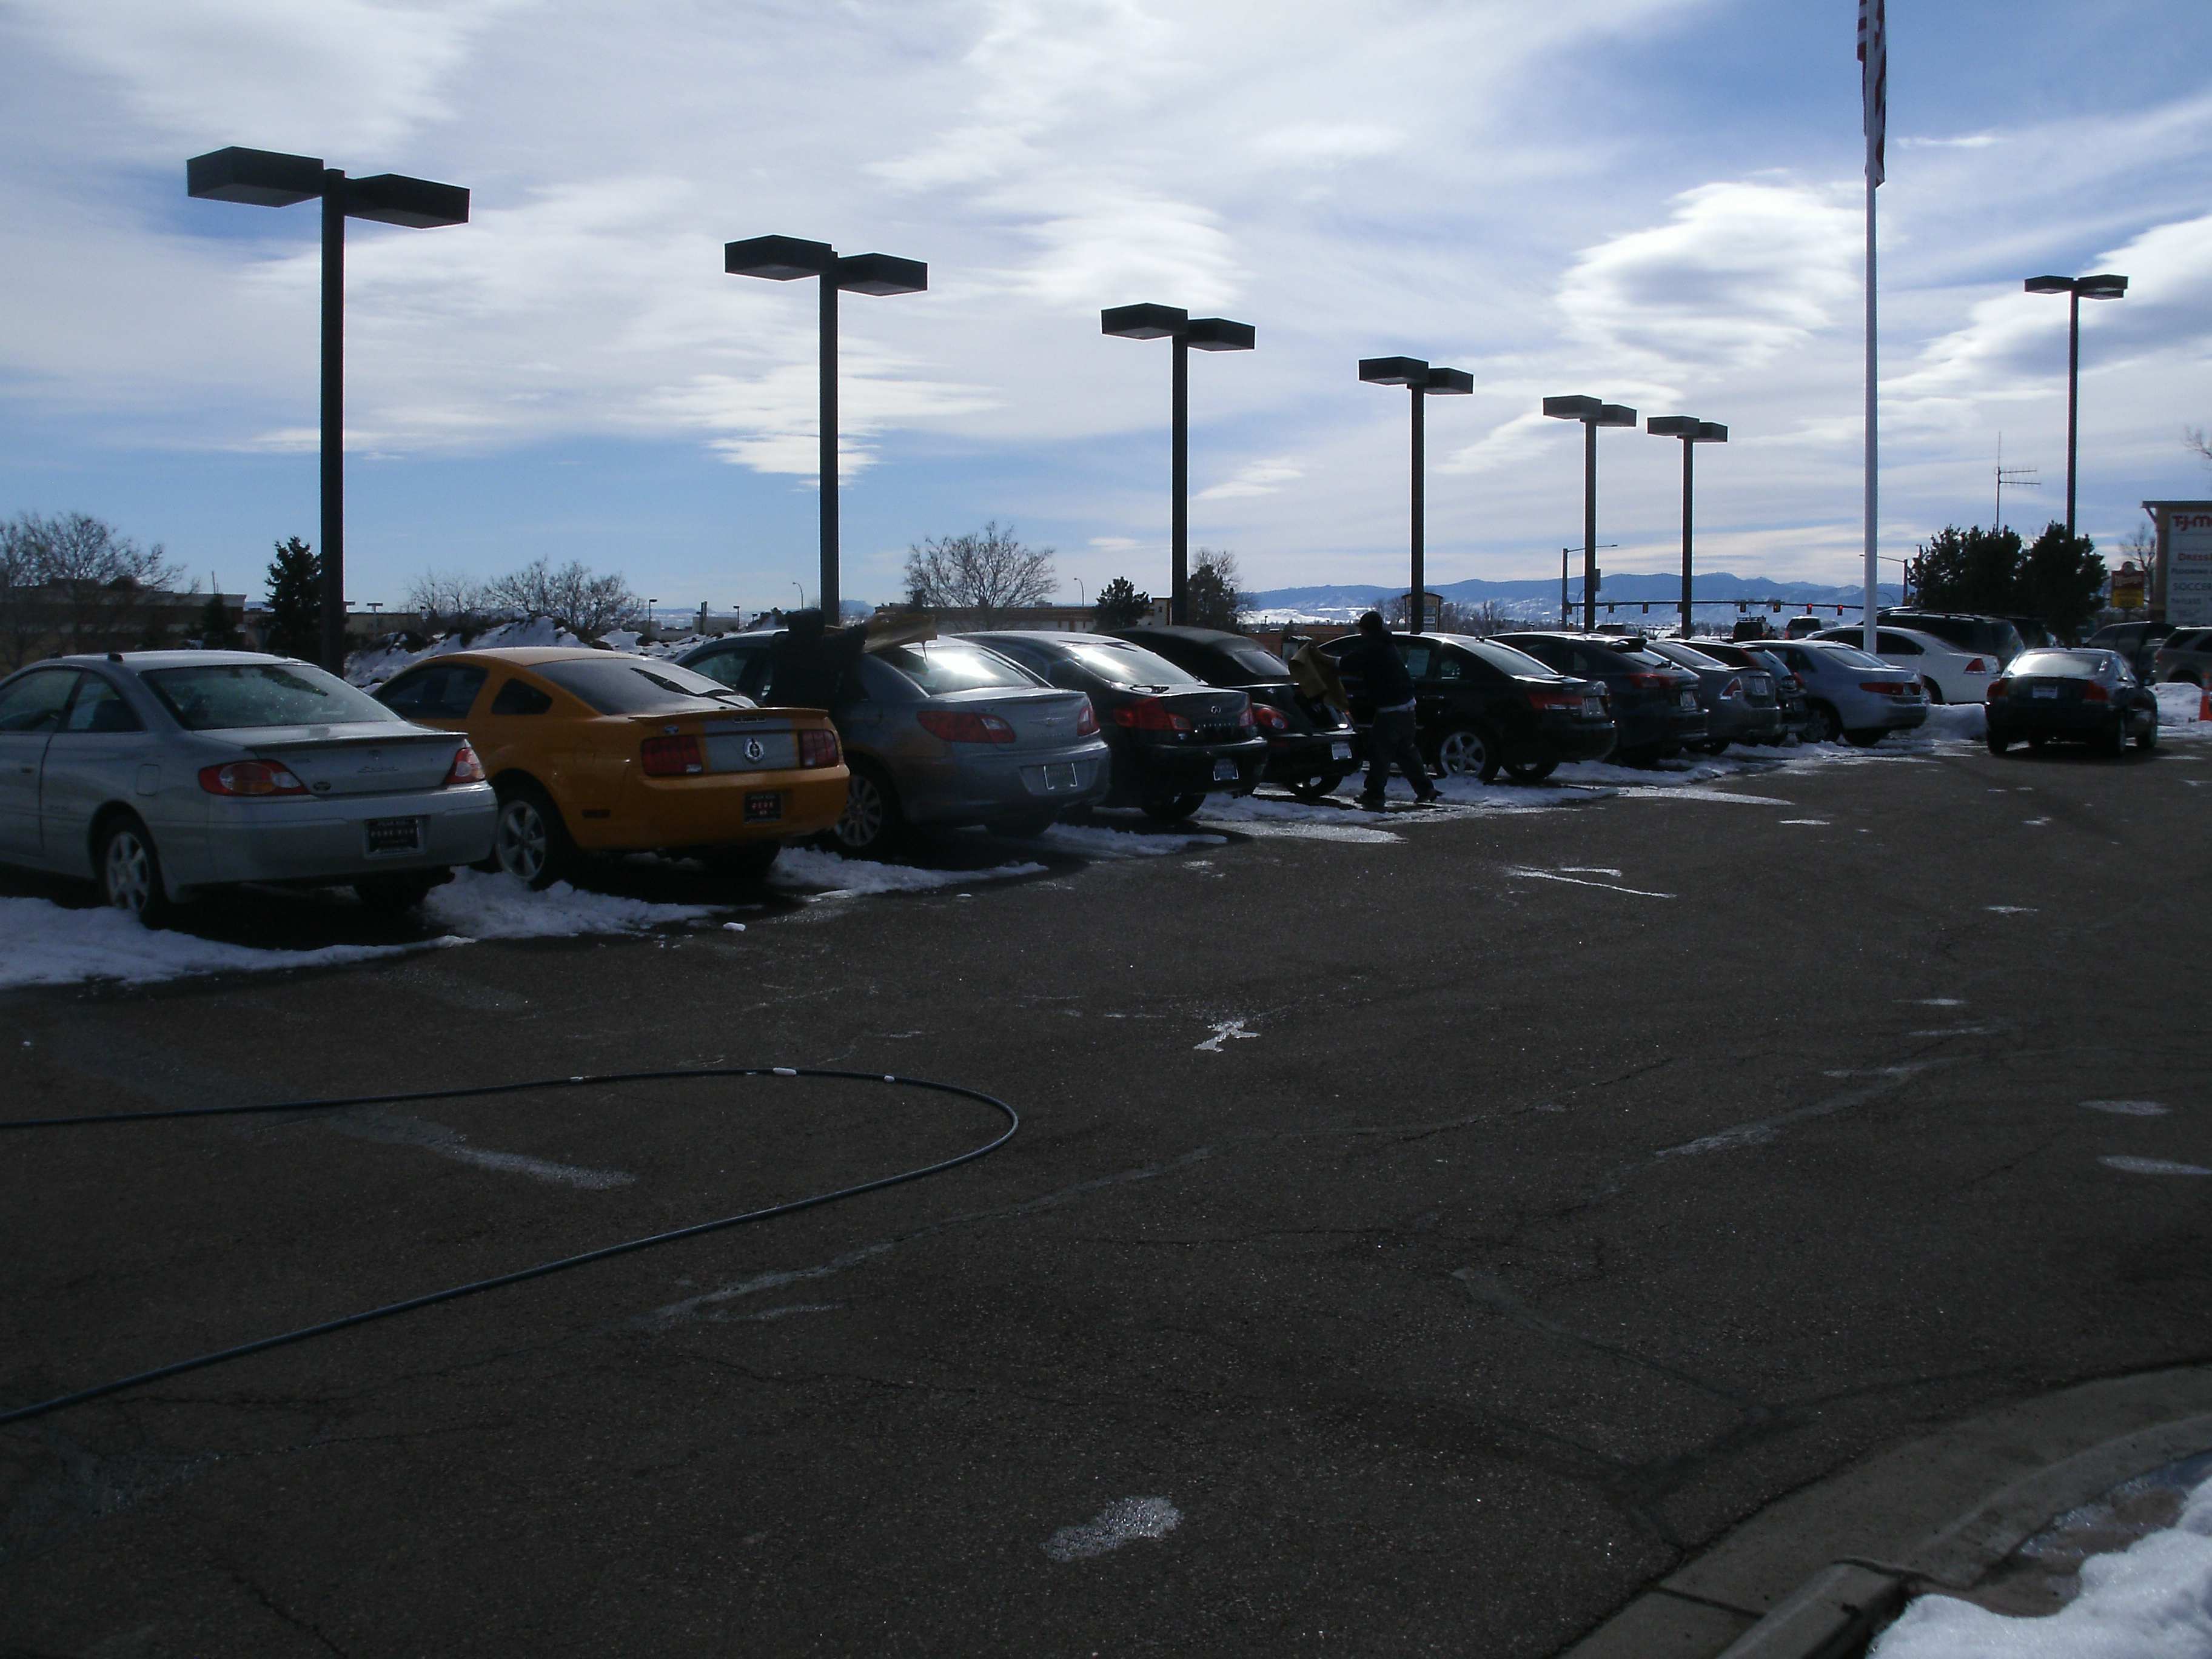 Denver Car Washing At Auto Dealerships In The Winter